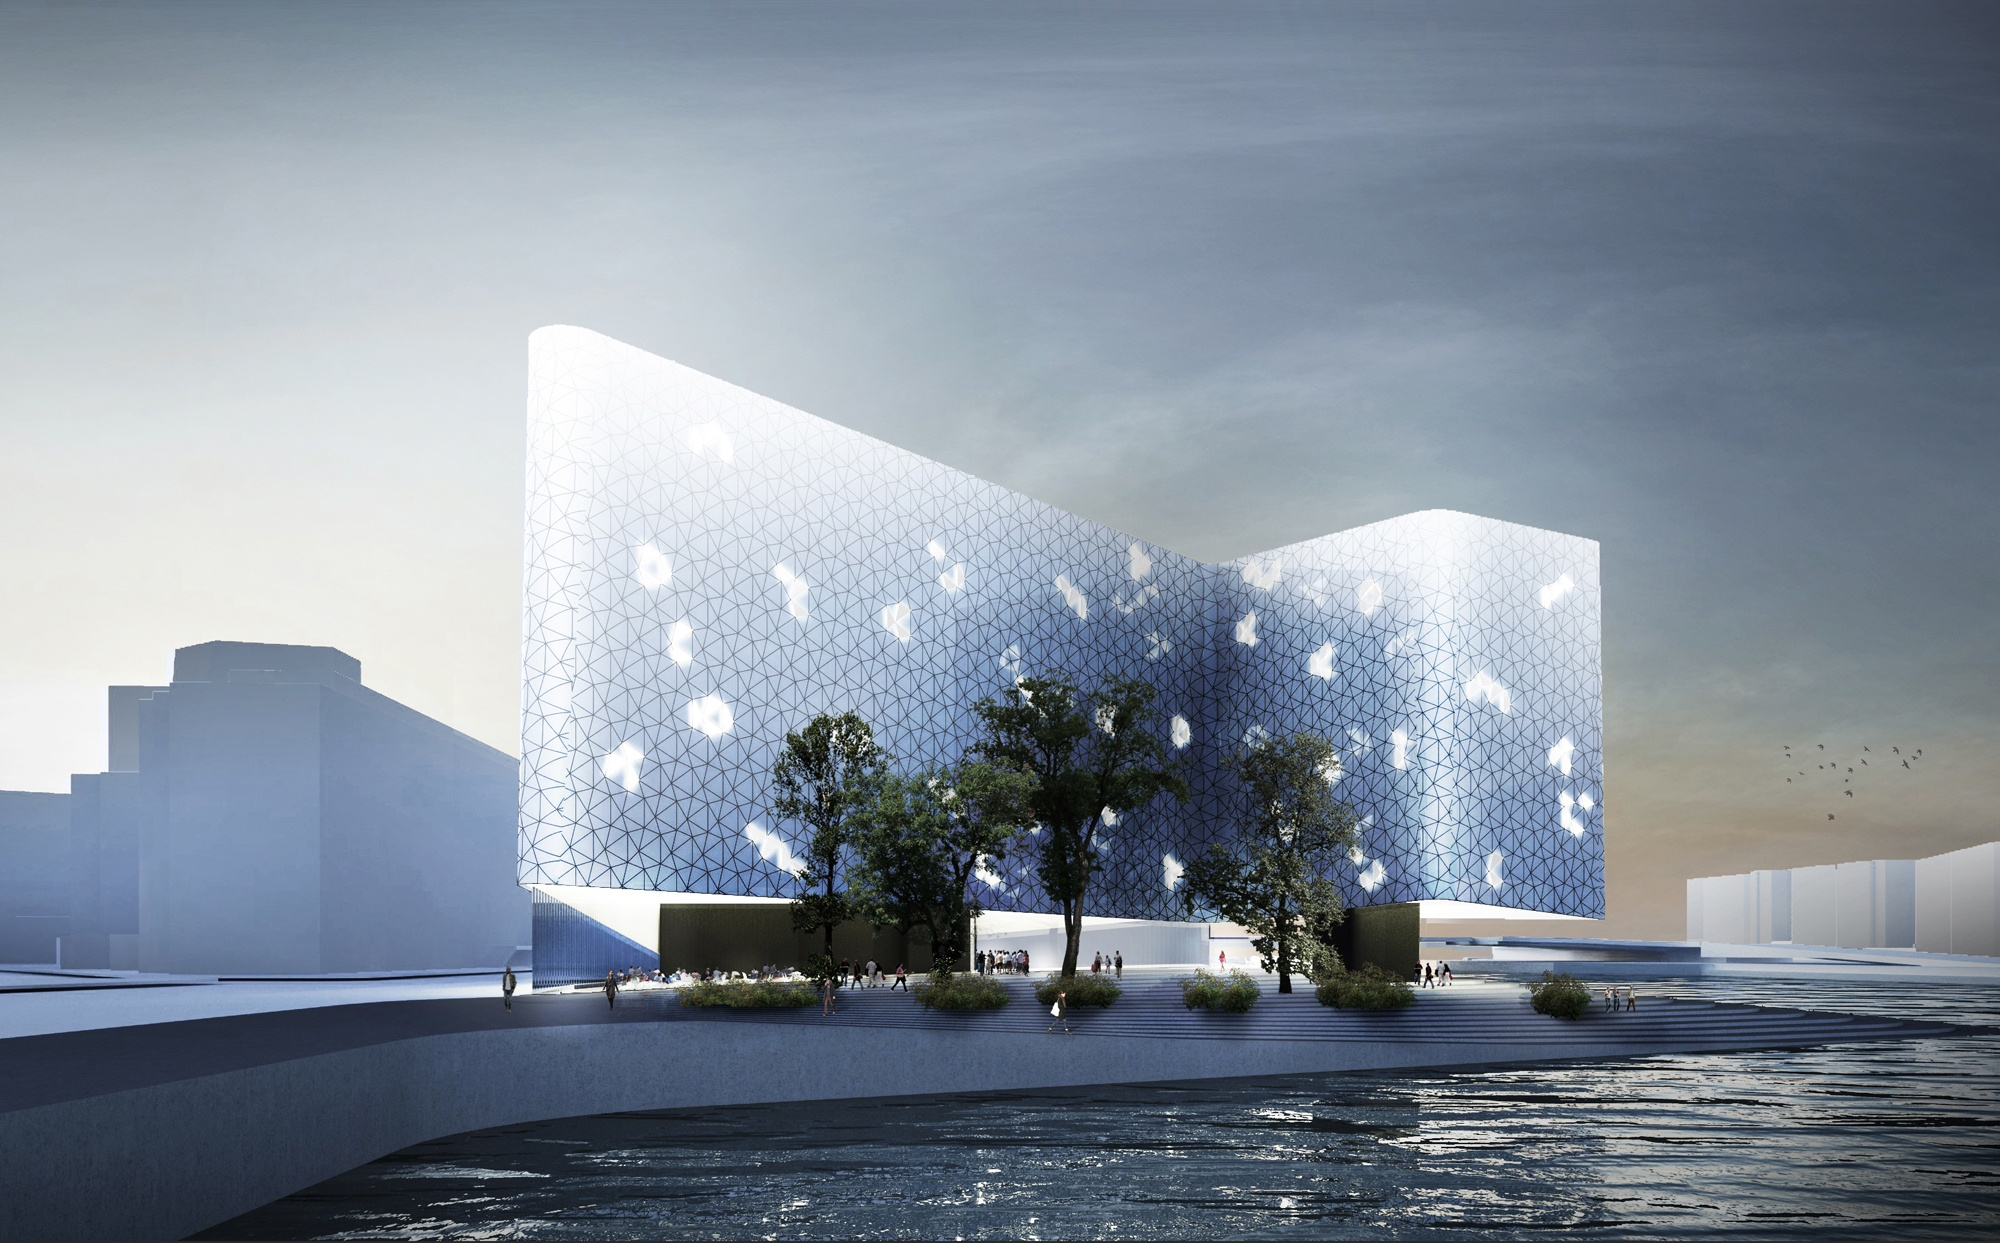 Sn hetta to design helsinki hotel inspired by shattered ice for Design hotel helsinki